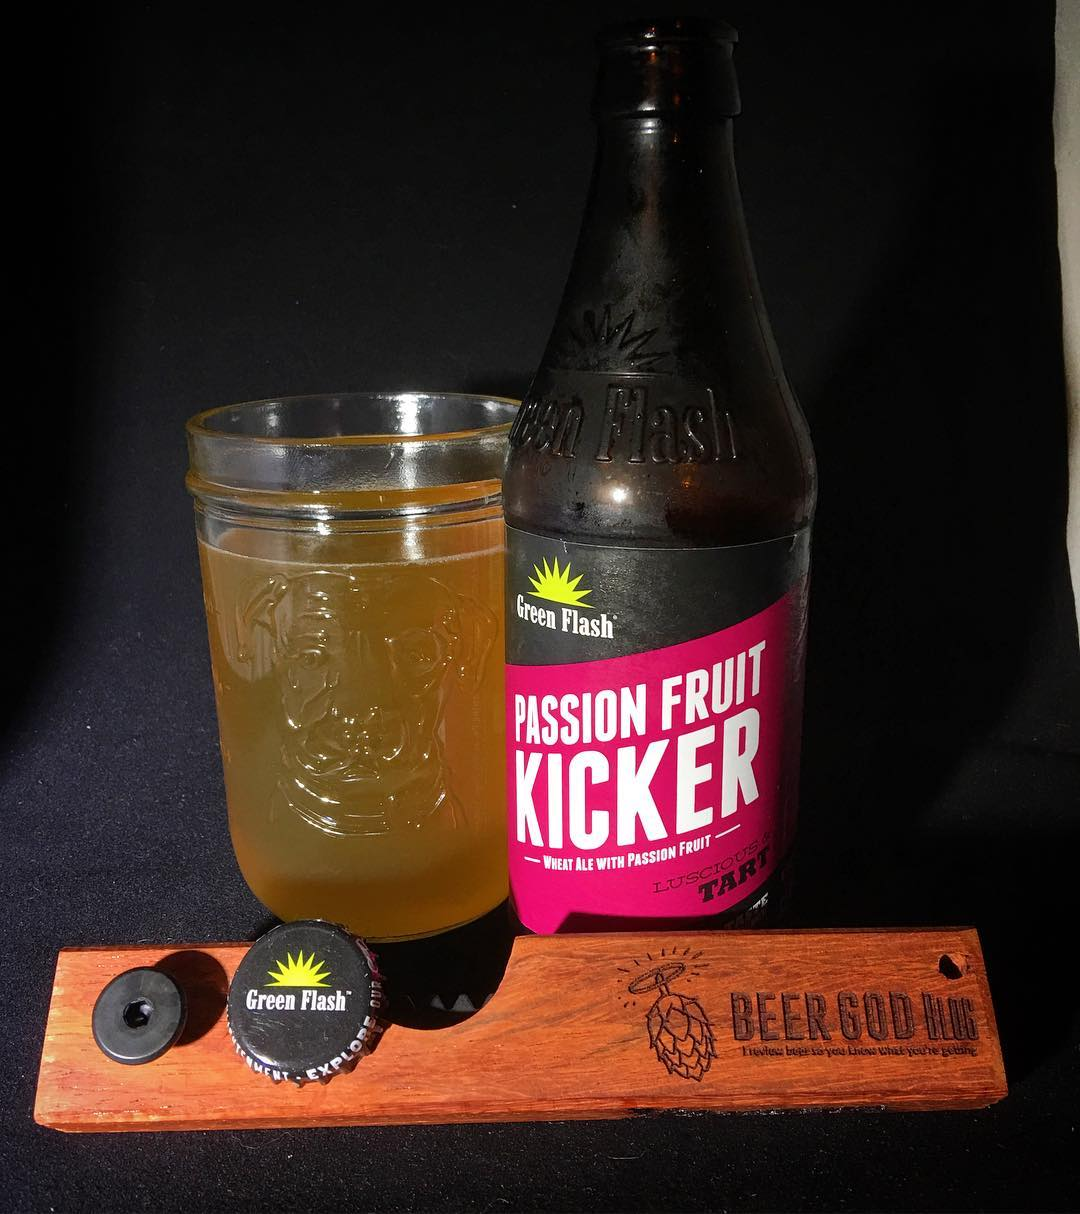 @greenflashbeer Passion Fruit Kicker